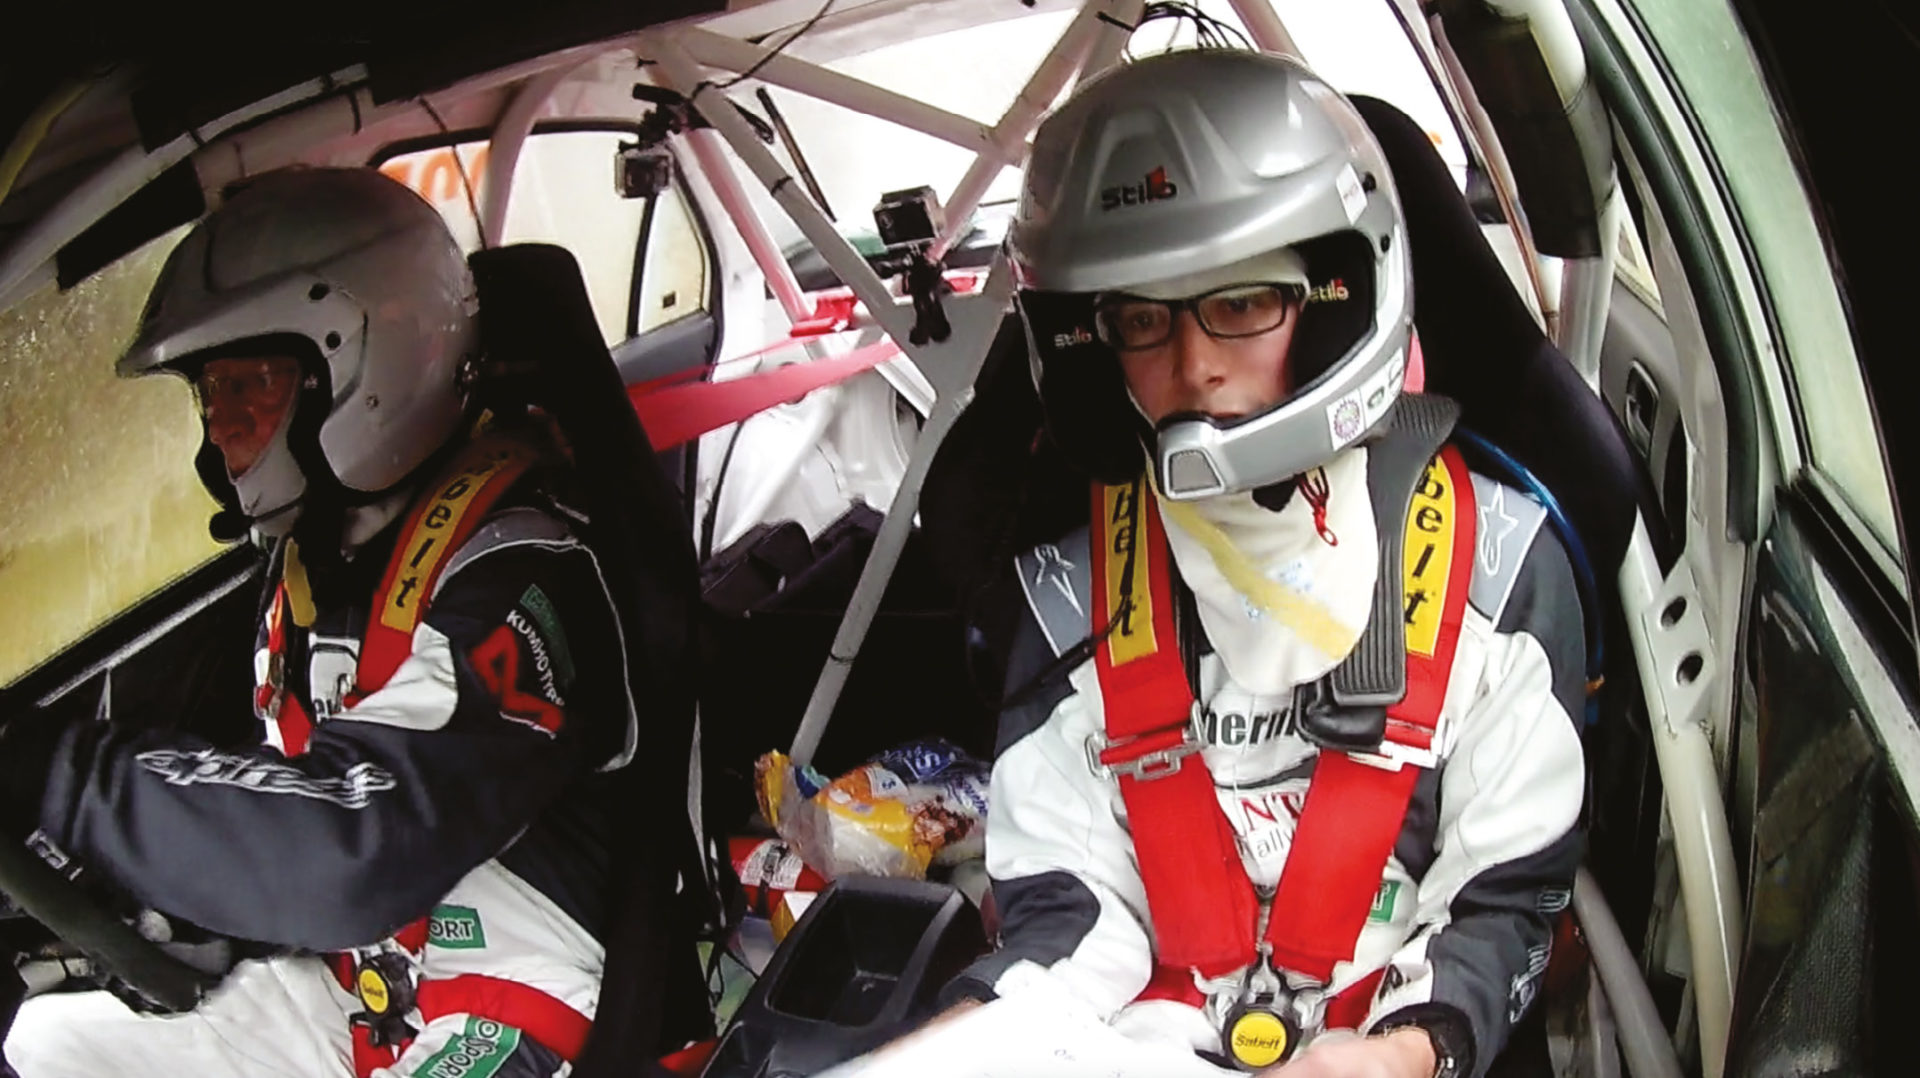 Tobin had never rallied before, so Rally GB was a steep learning curve for our rookie navigator